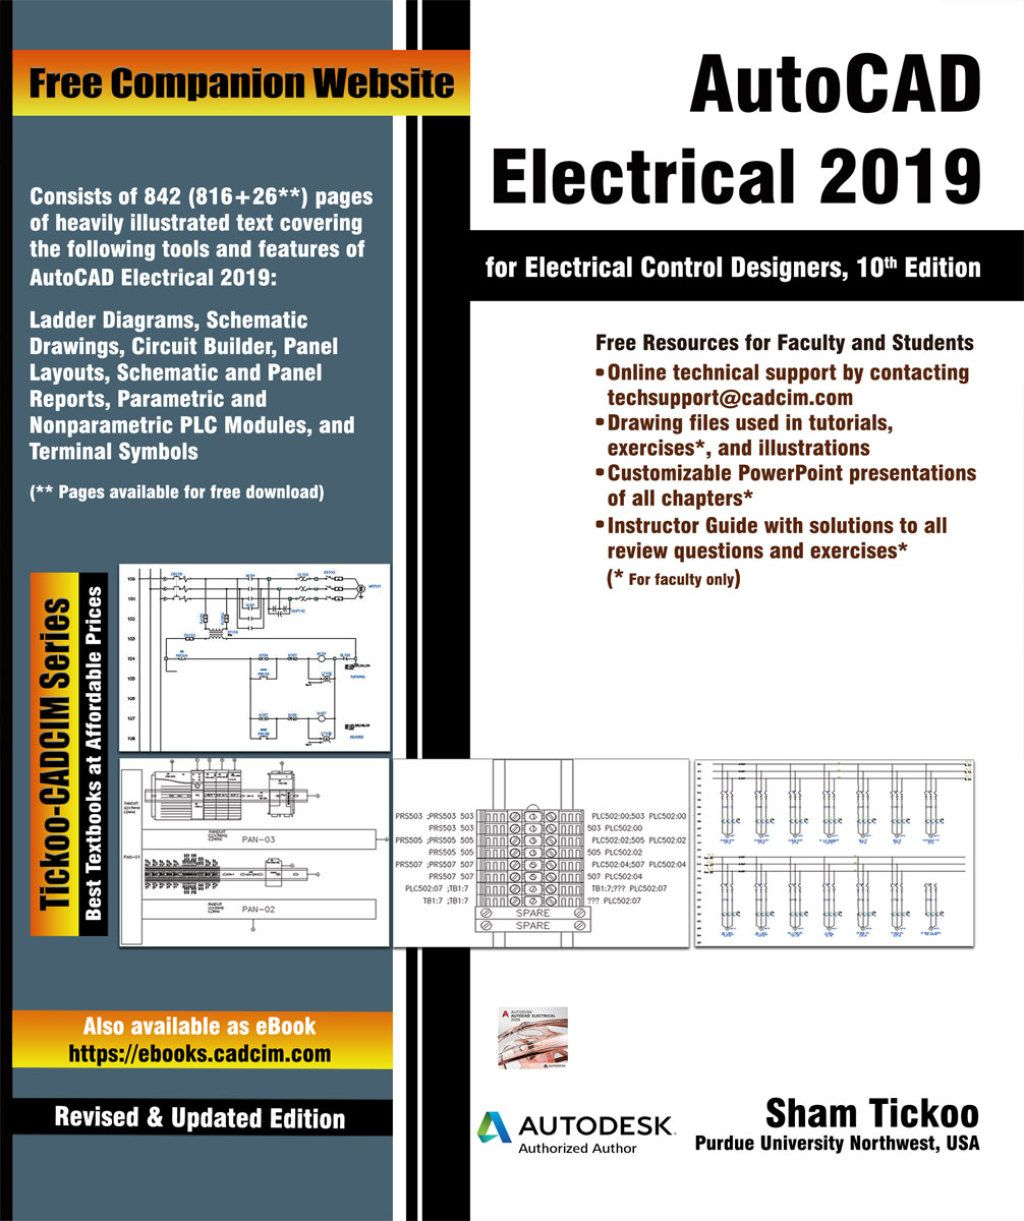 Autocad Electrical 2019 For Electrical Control Designers 10th